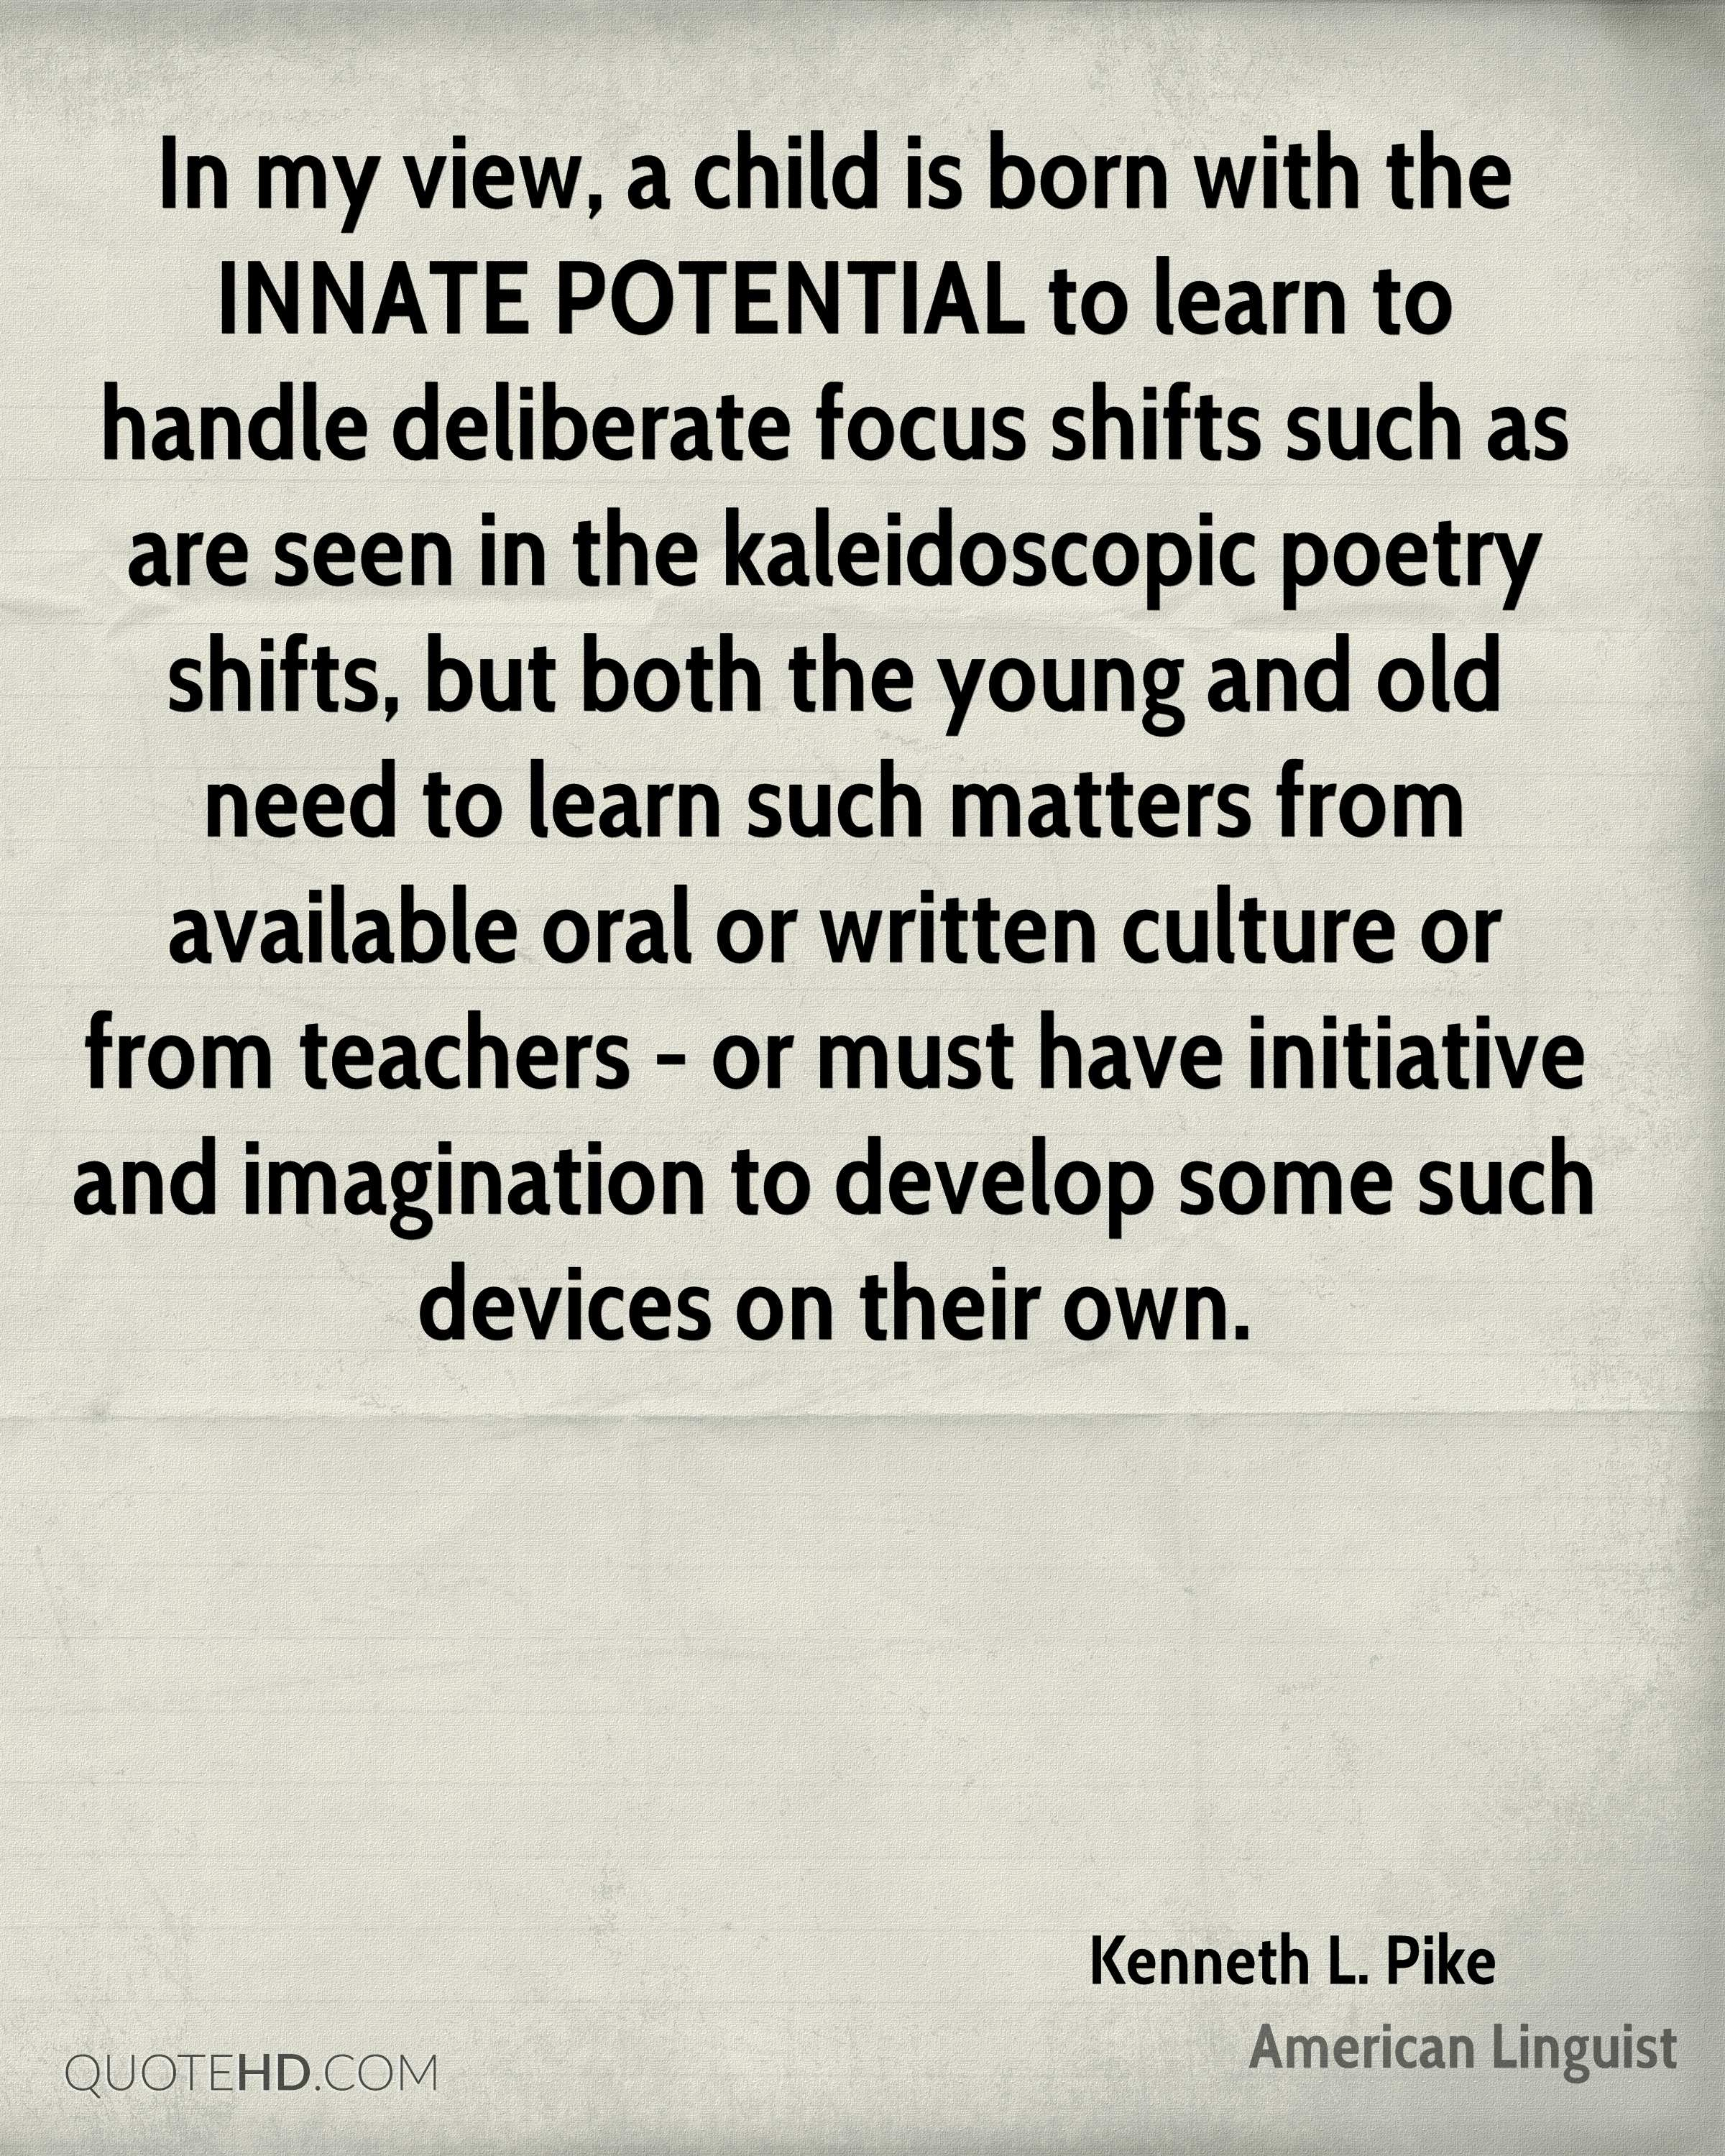 In my view, a child is born with the INNATE POTENTIAL to learn to handle deliberate focus shifts such as are seen in the kaleidoscopic poetry shifts, but both the young and old need to learn such matters from available oral or written culture or from teachers - or must have initiative and imagination to develop some such devices on their own.